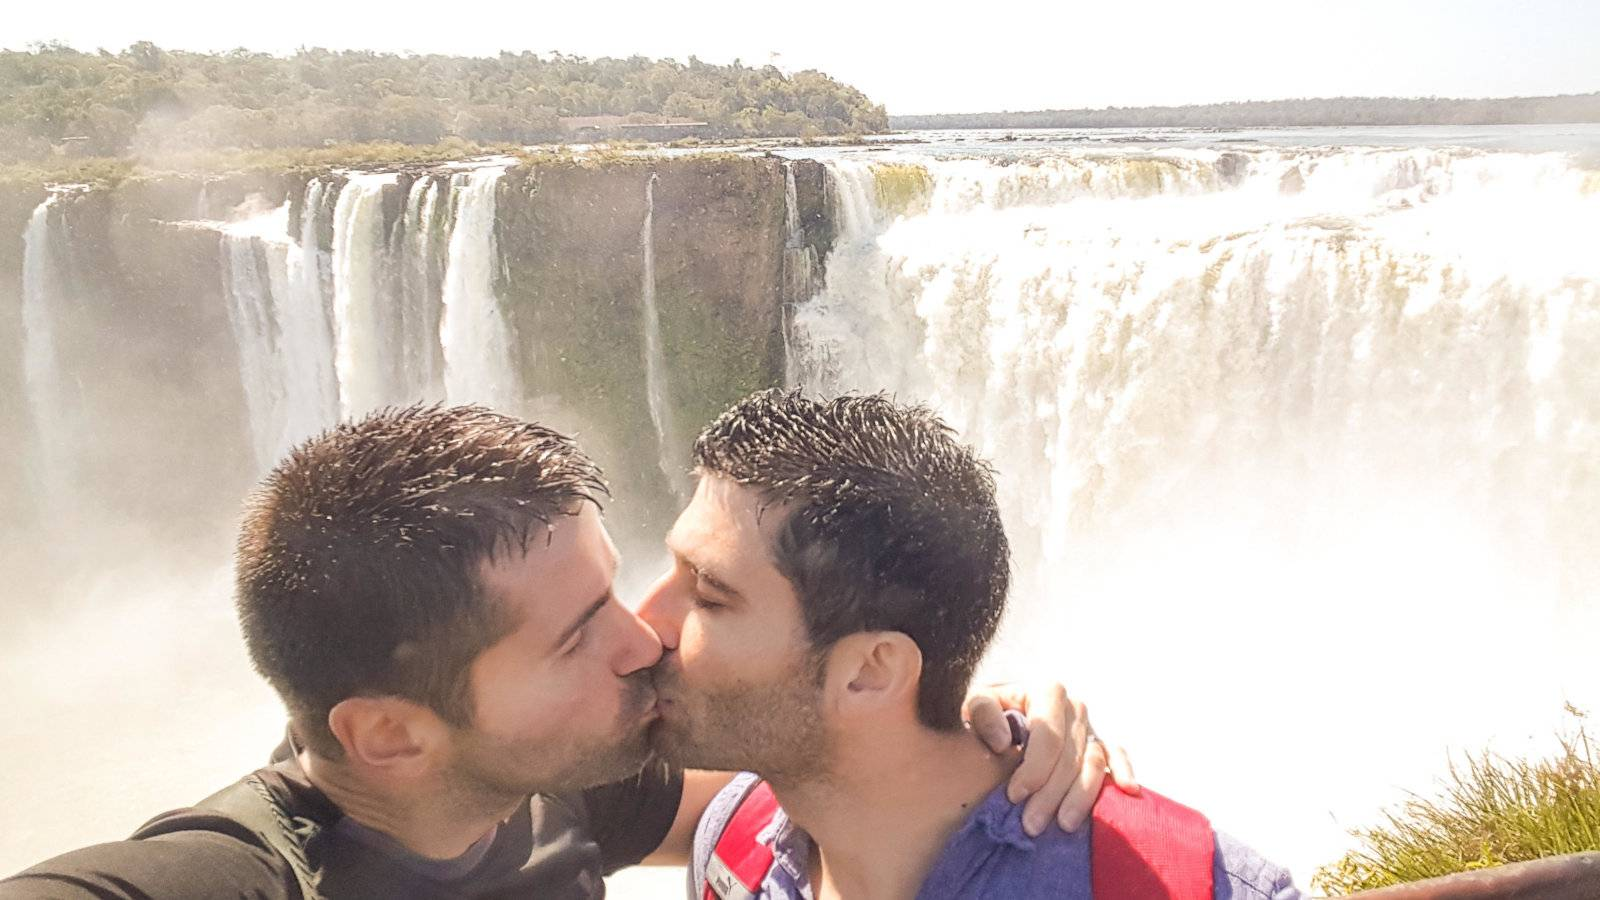 Gay travellers to Iguazu Falls can feel comfortable knowing they don't need to hide their sexuality.